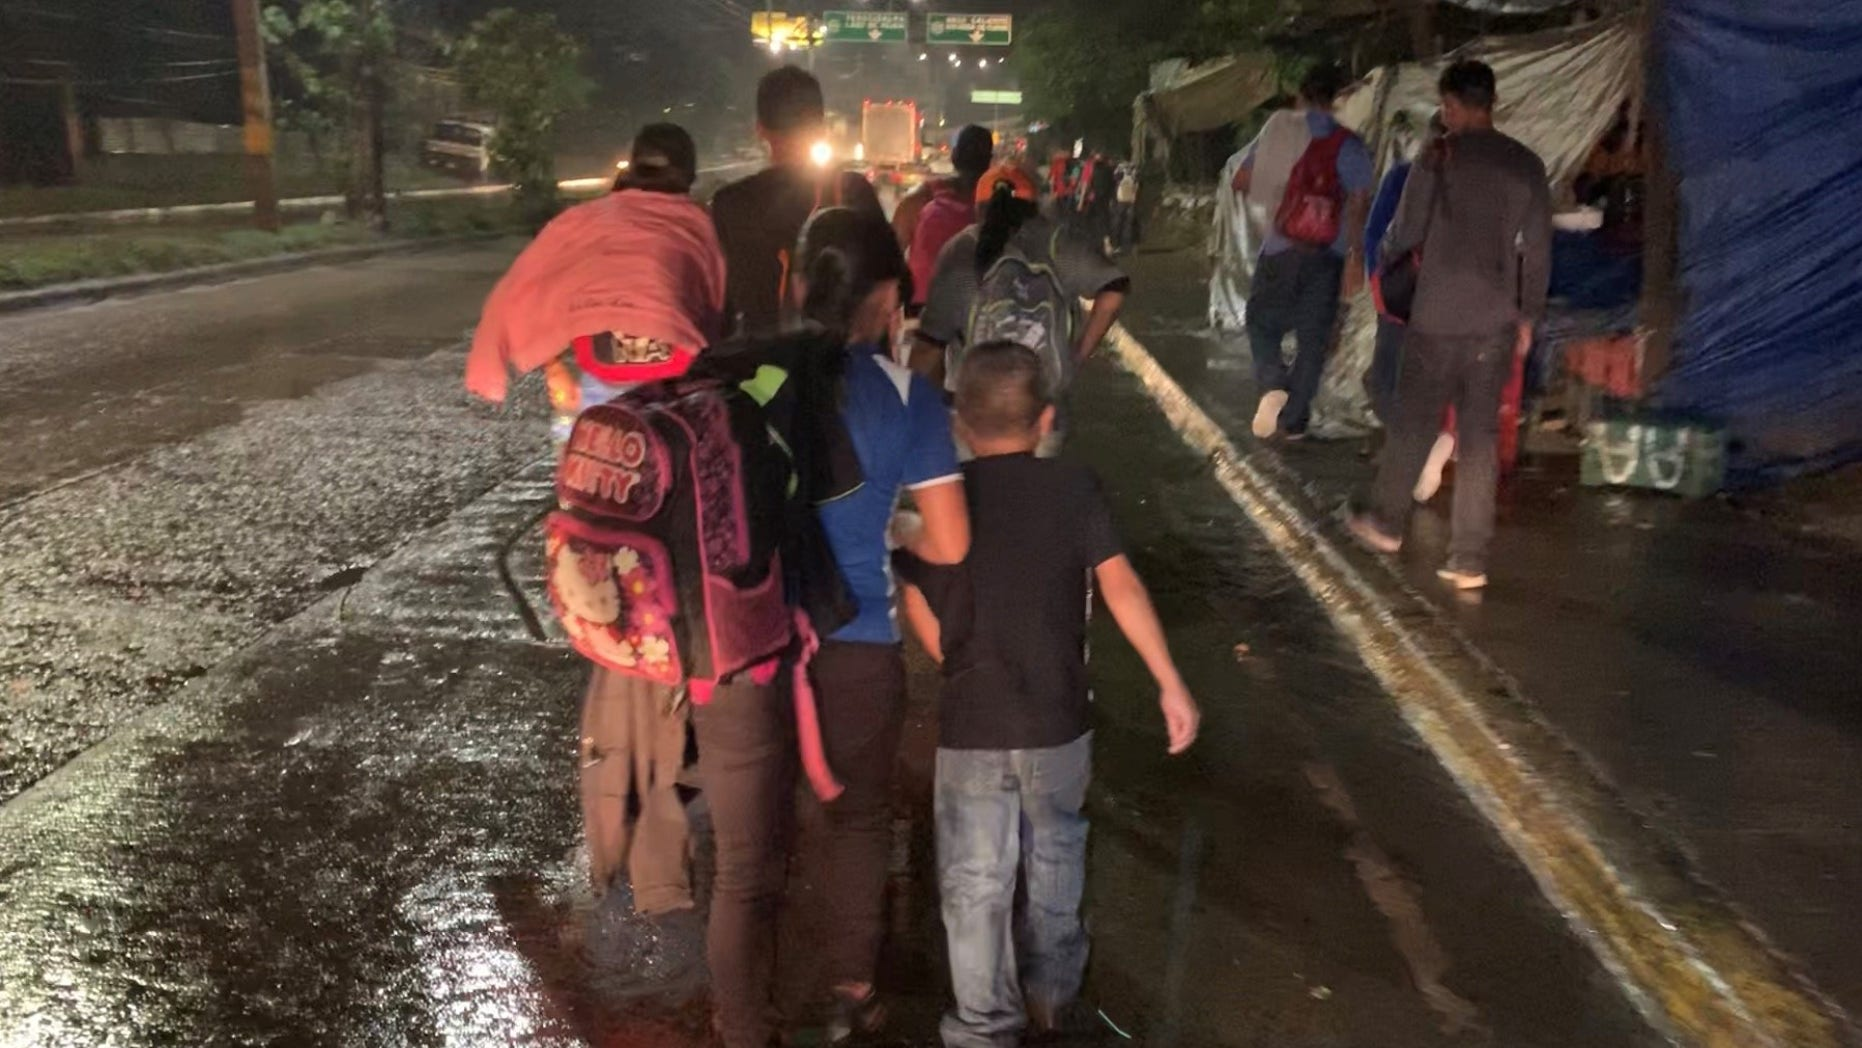 Another migrant caravan heads for USA from Honduras